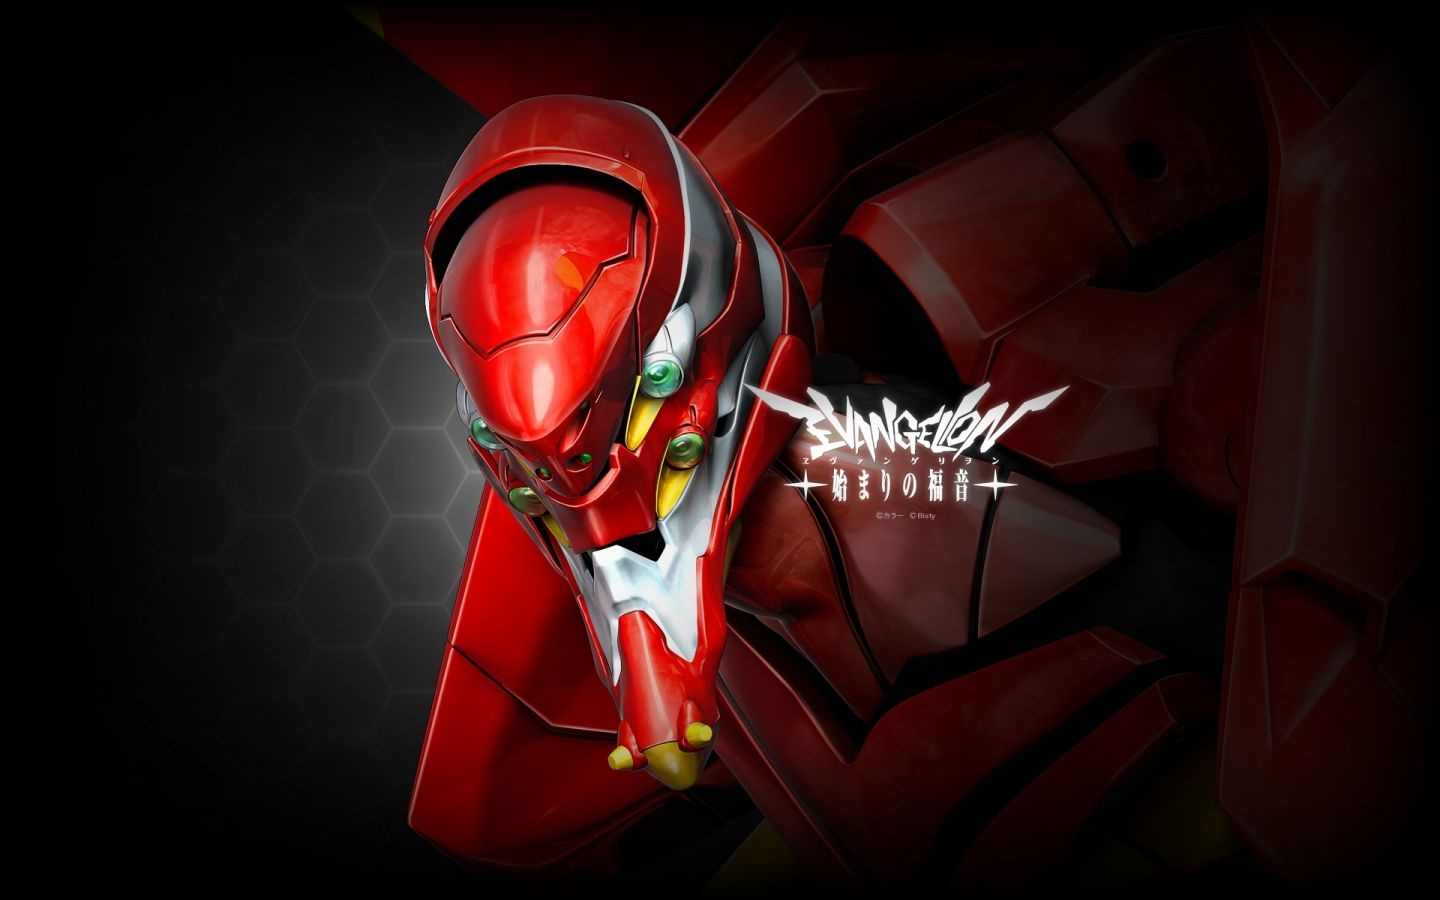 Eva 02 Neon Genesis Evangelion Imagenes De Video Juegos Google Chrome Themes